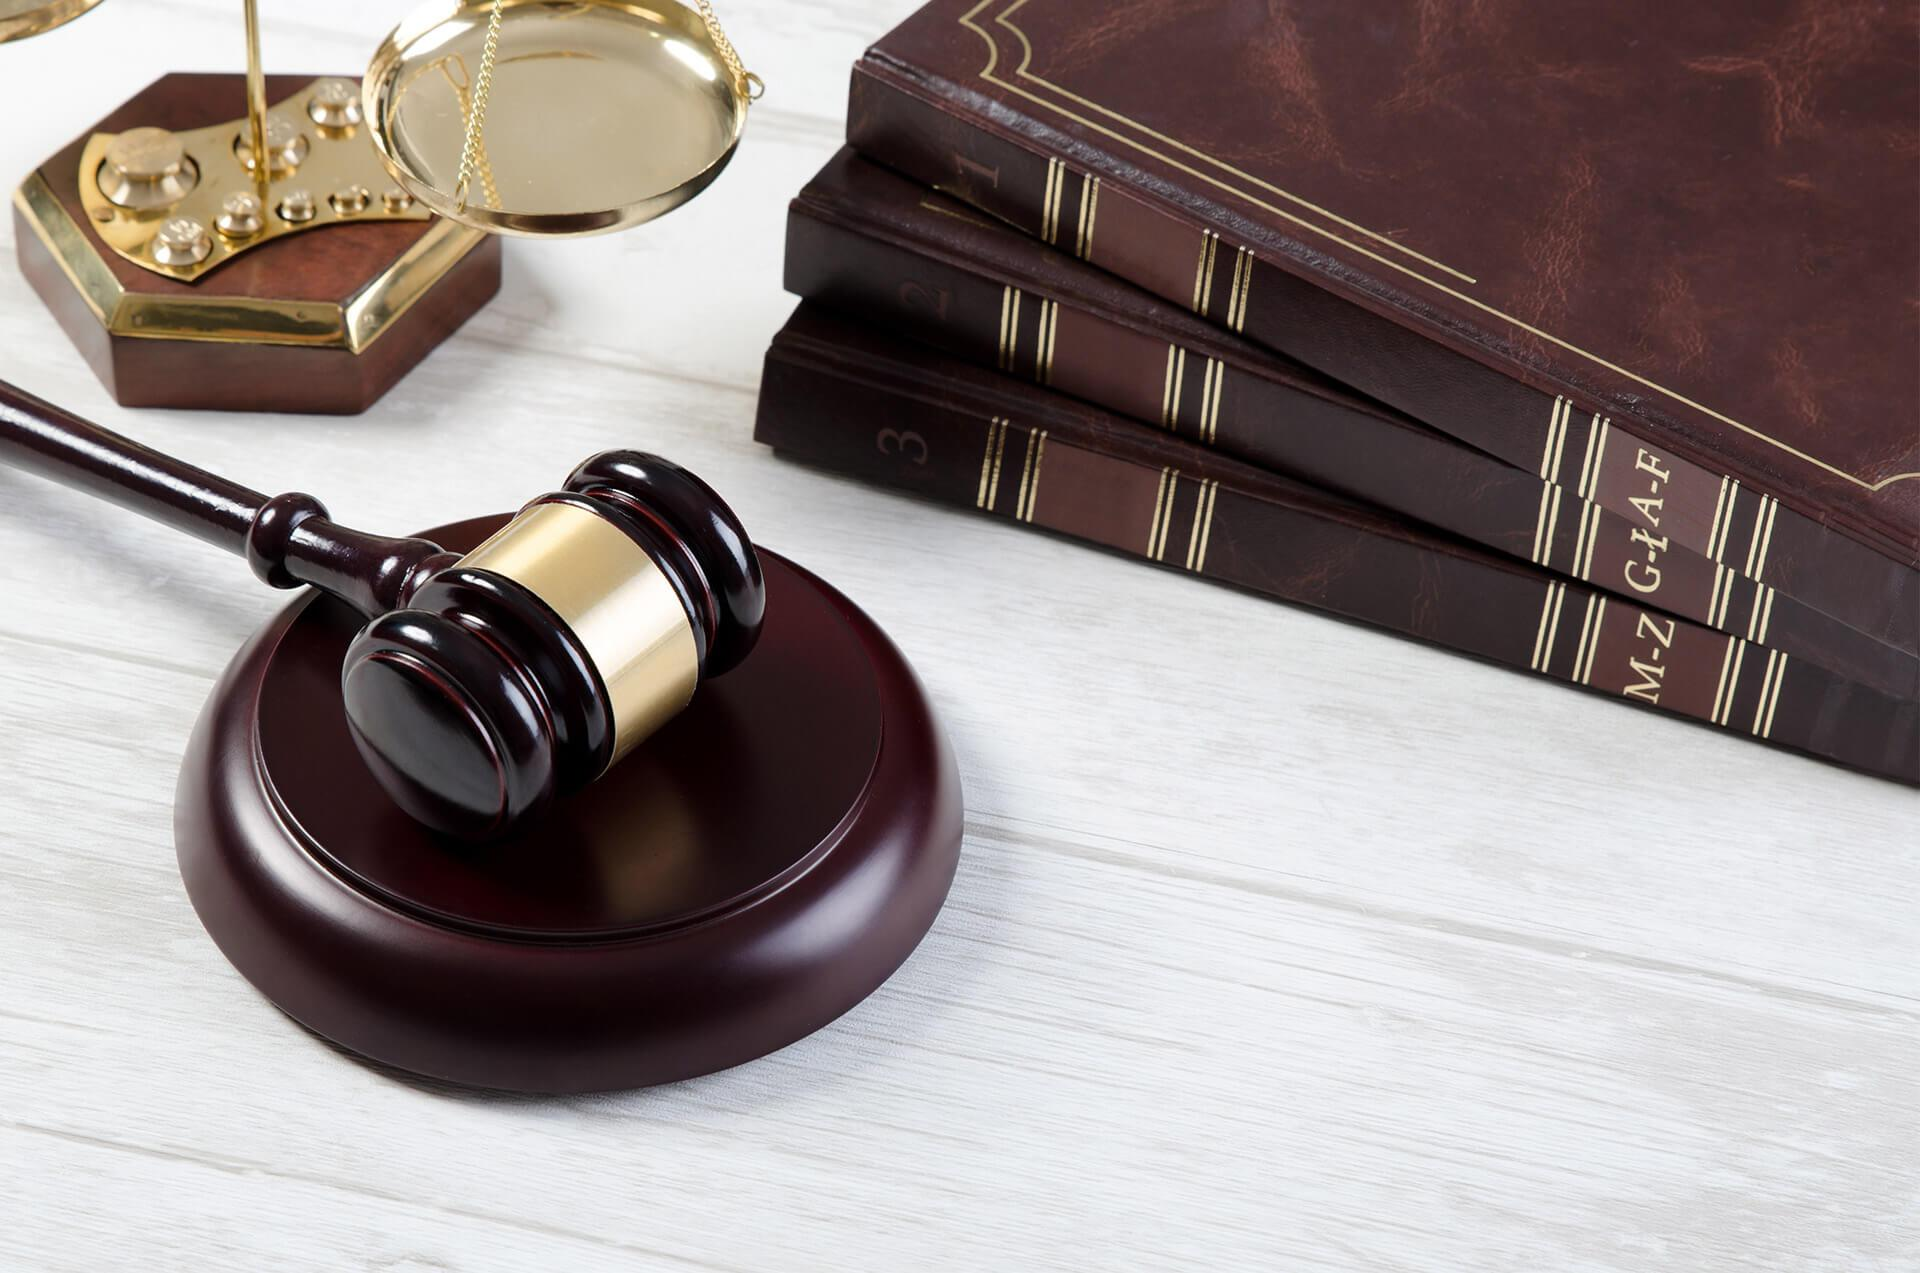 Chappell Law Group Help You in Personal Injury And Business Law